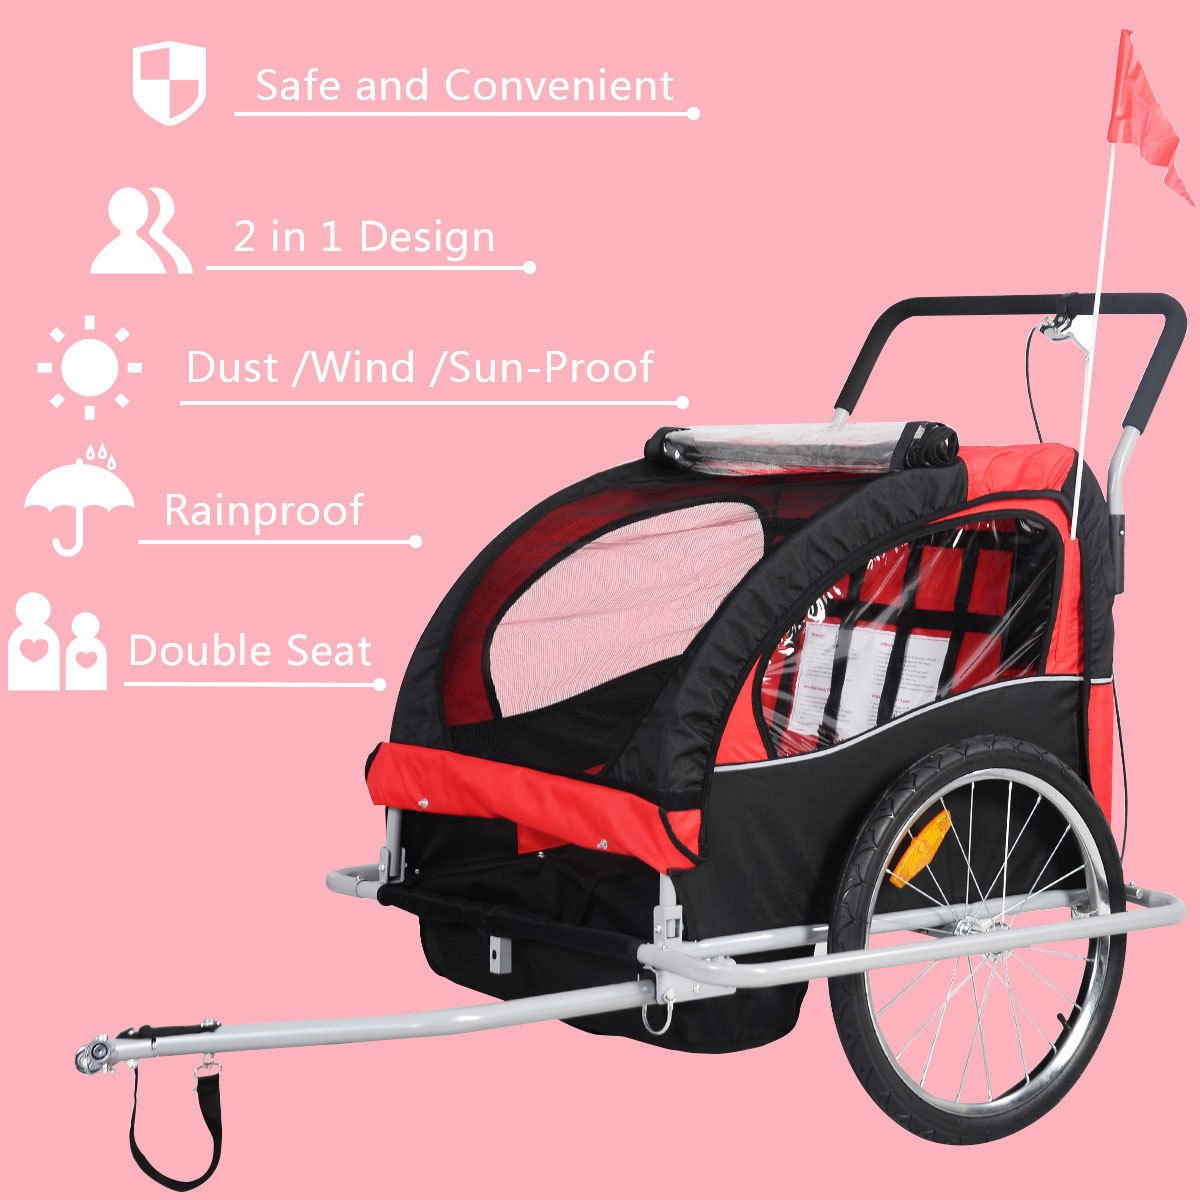 Bicycle Carrier Double Baby Bike Trailer Jogger Stroller 2 in 1 by Caraya (Image #2)